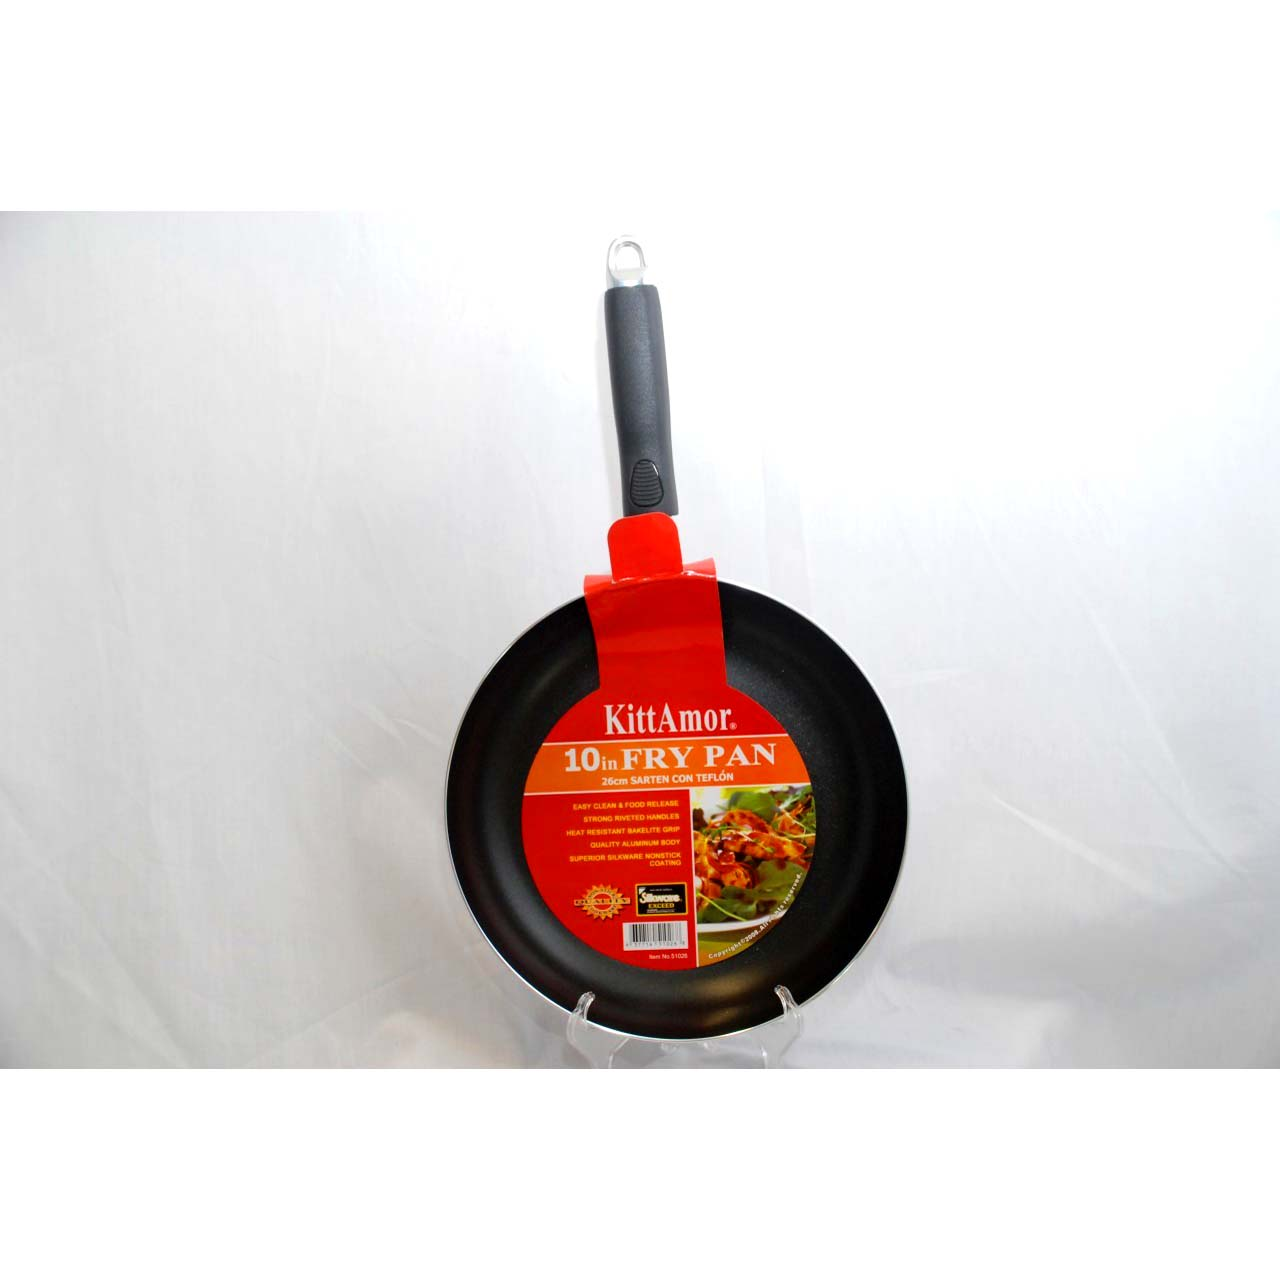 "10"" Teflon Frying Pan"